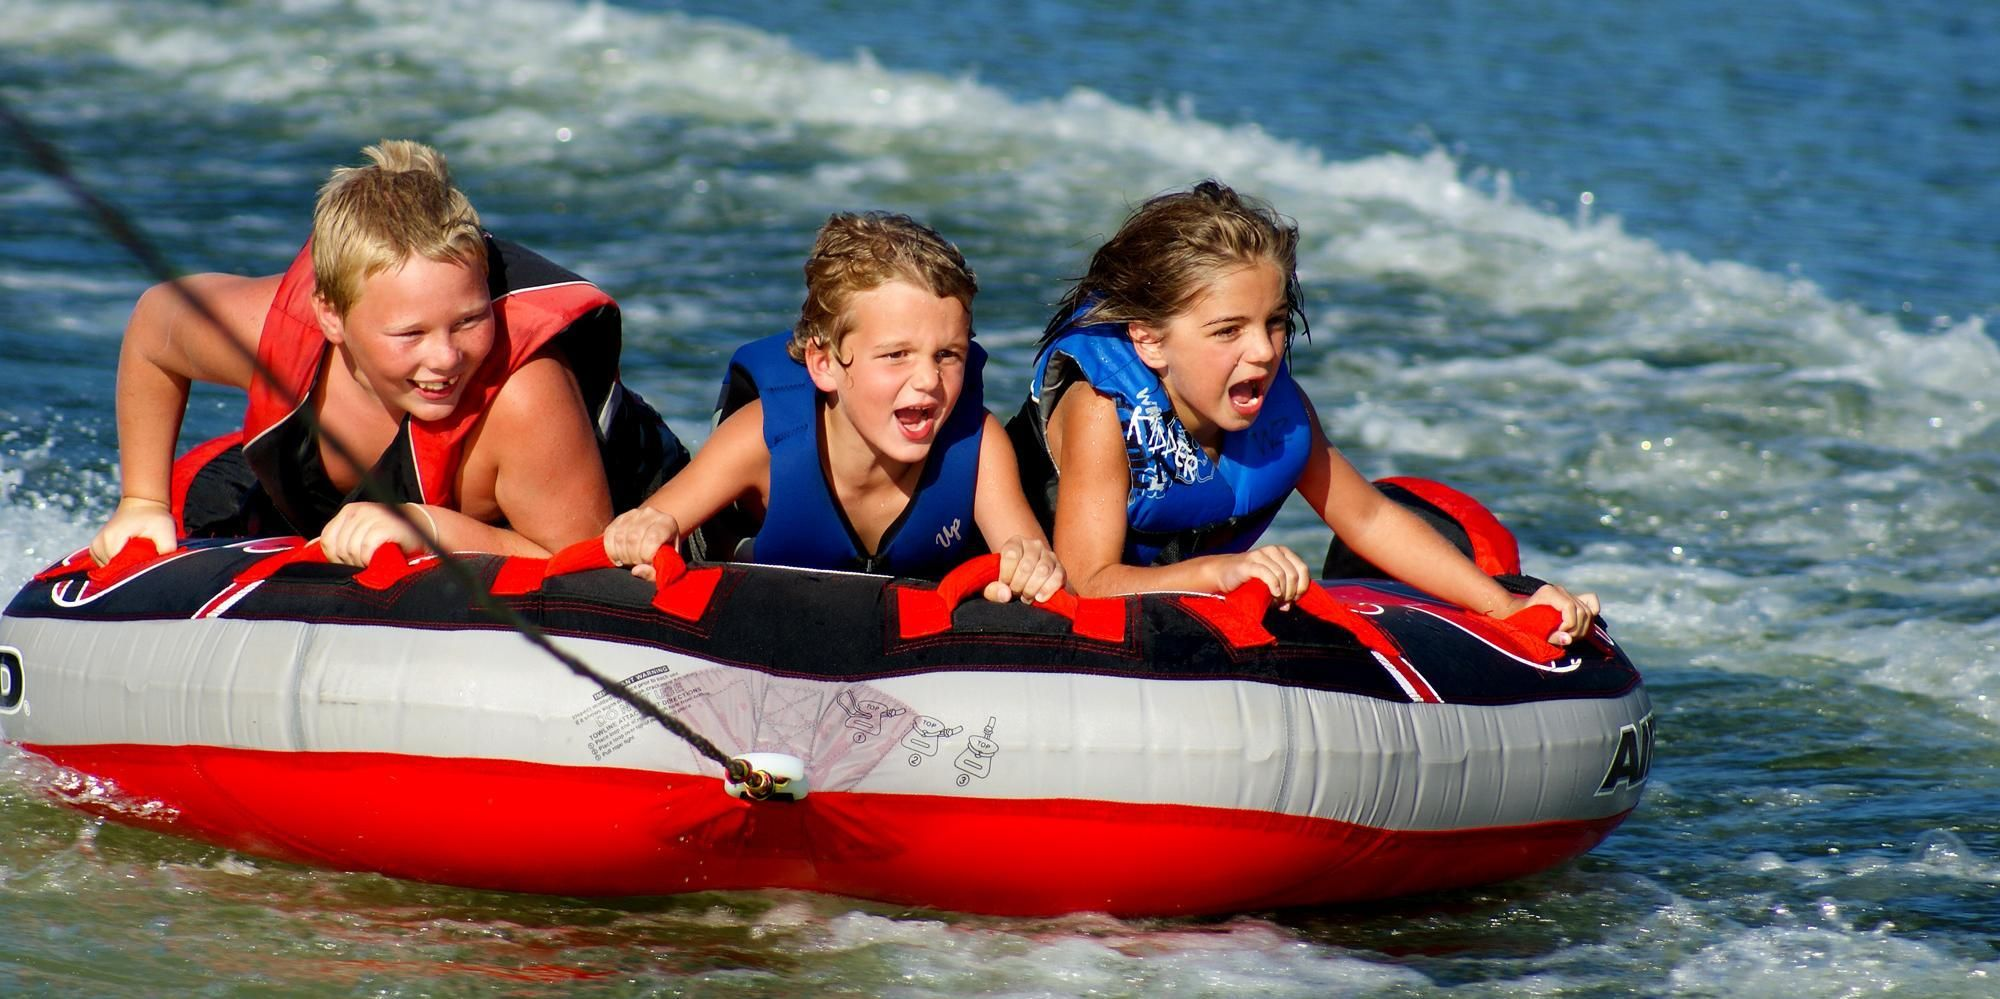 Fun for all ages at lake ouachita houseboat rentals